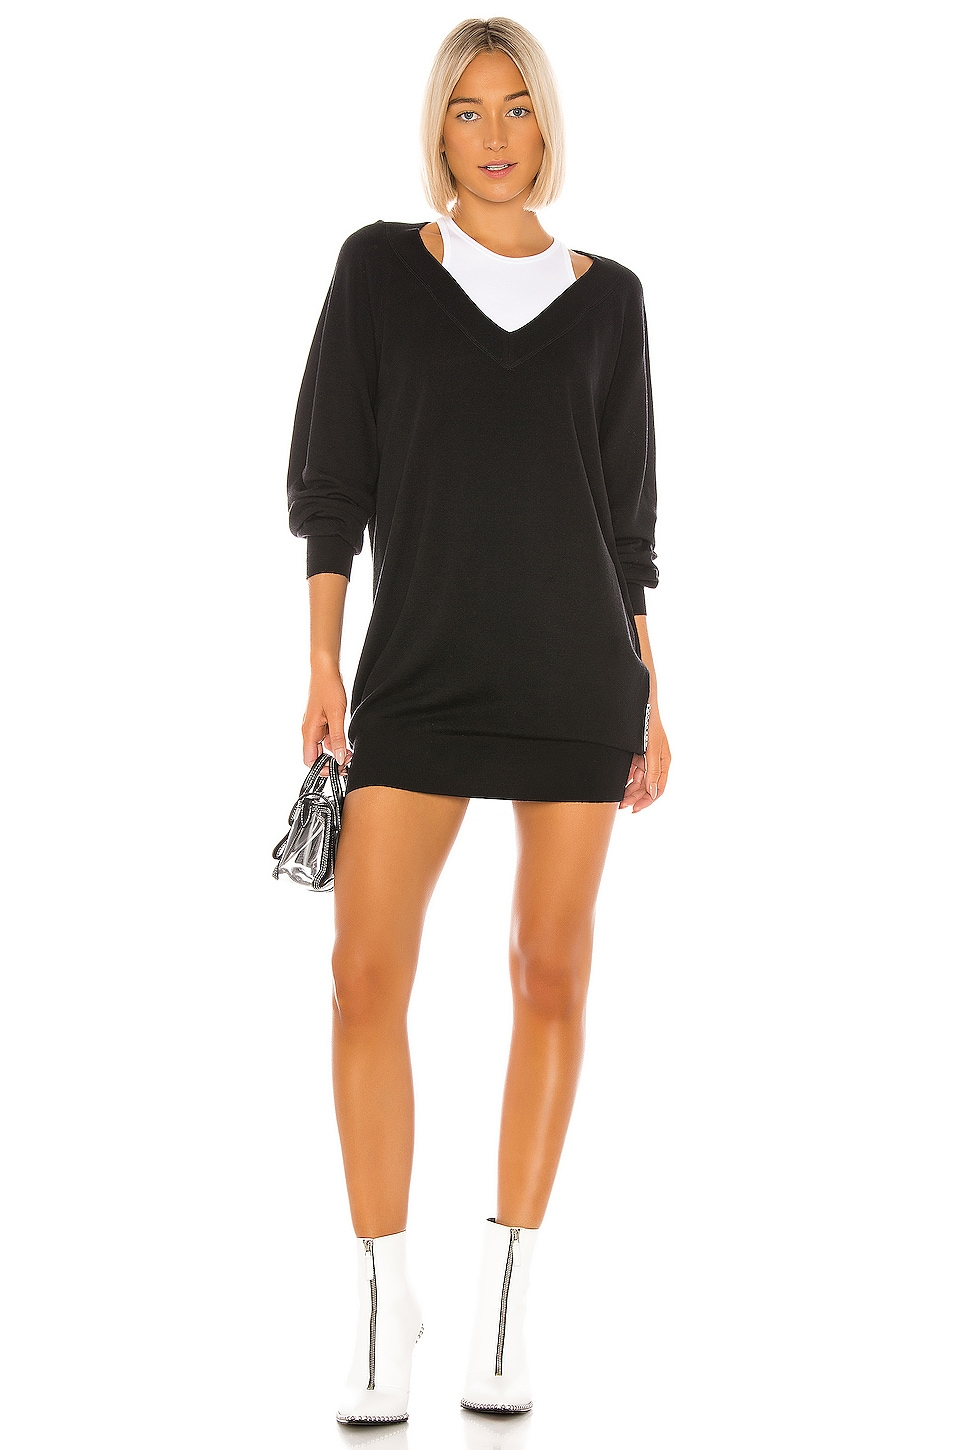 T by Alexander Wang Bi Layer Sweater Dress in Black & White